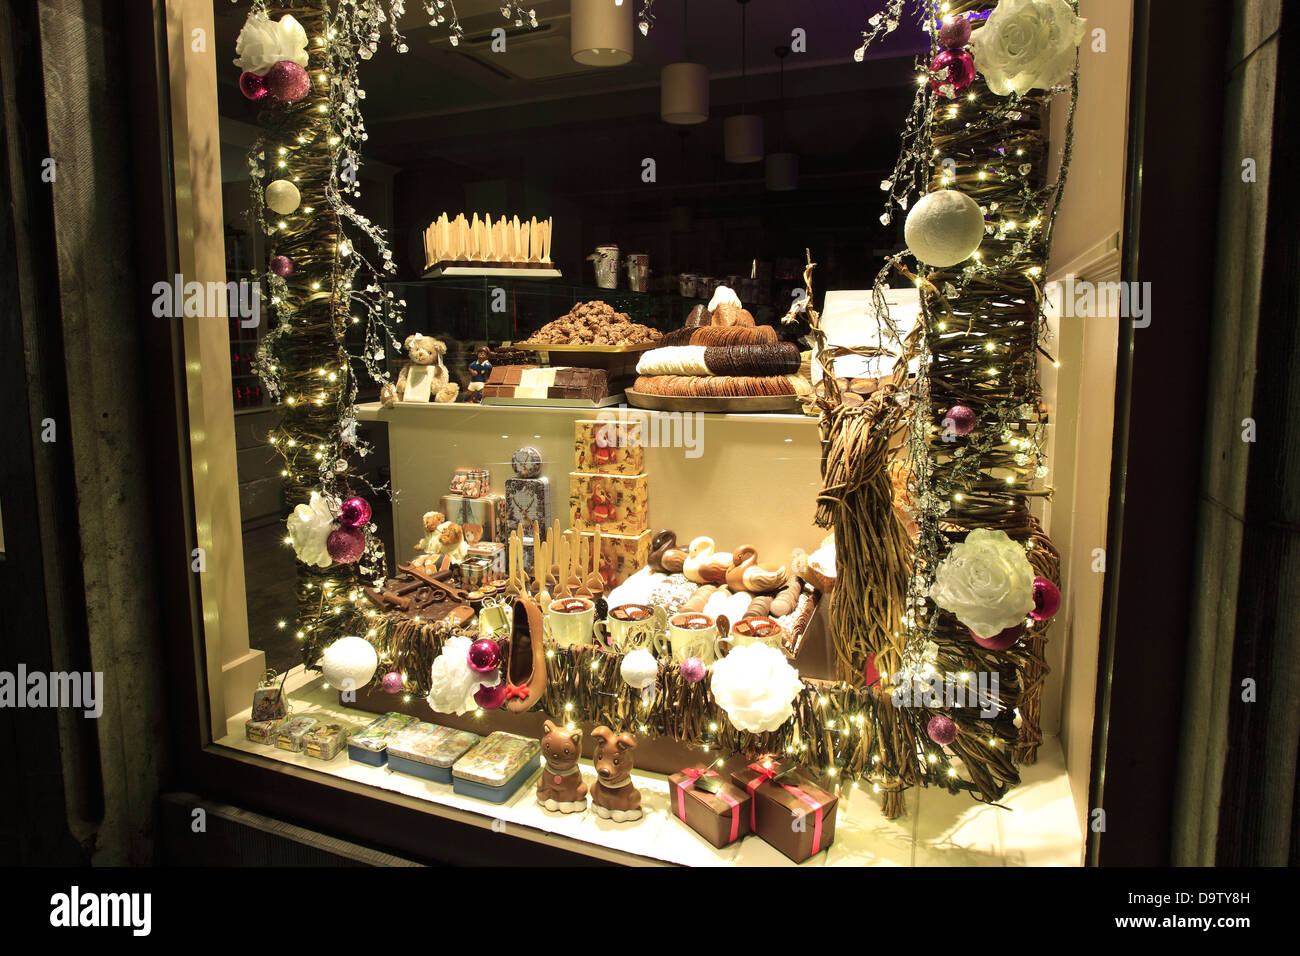 Christmas Window Displays.Belgium Chocolate Shop Window Display At Christmas Time